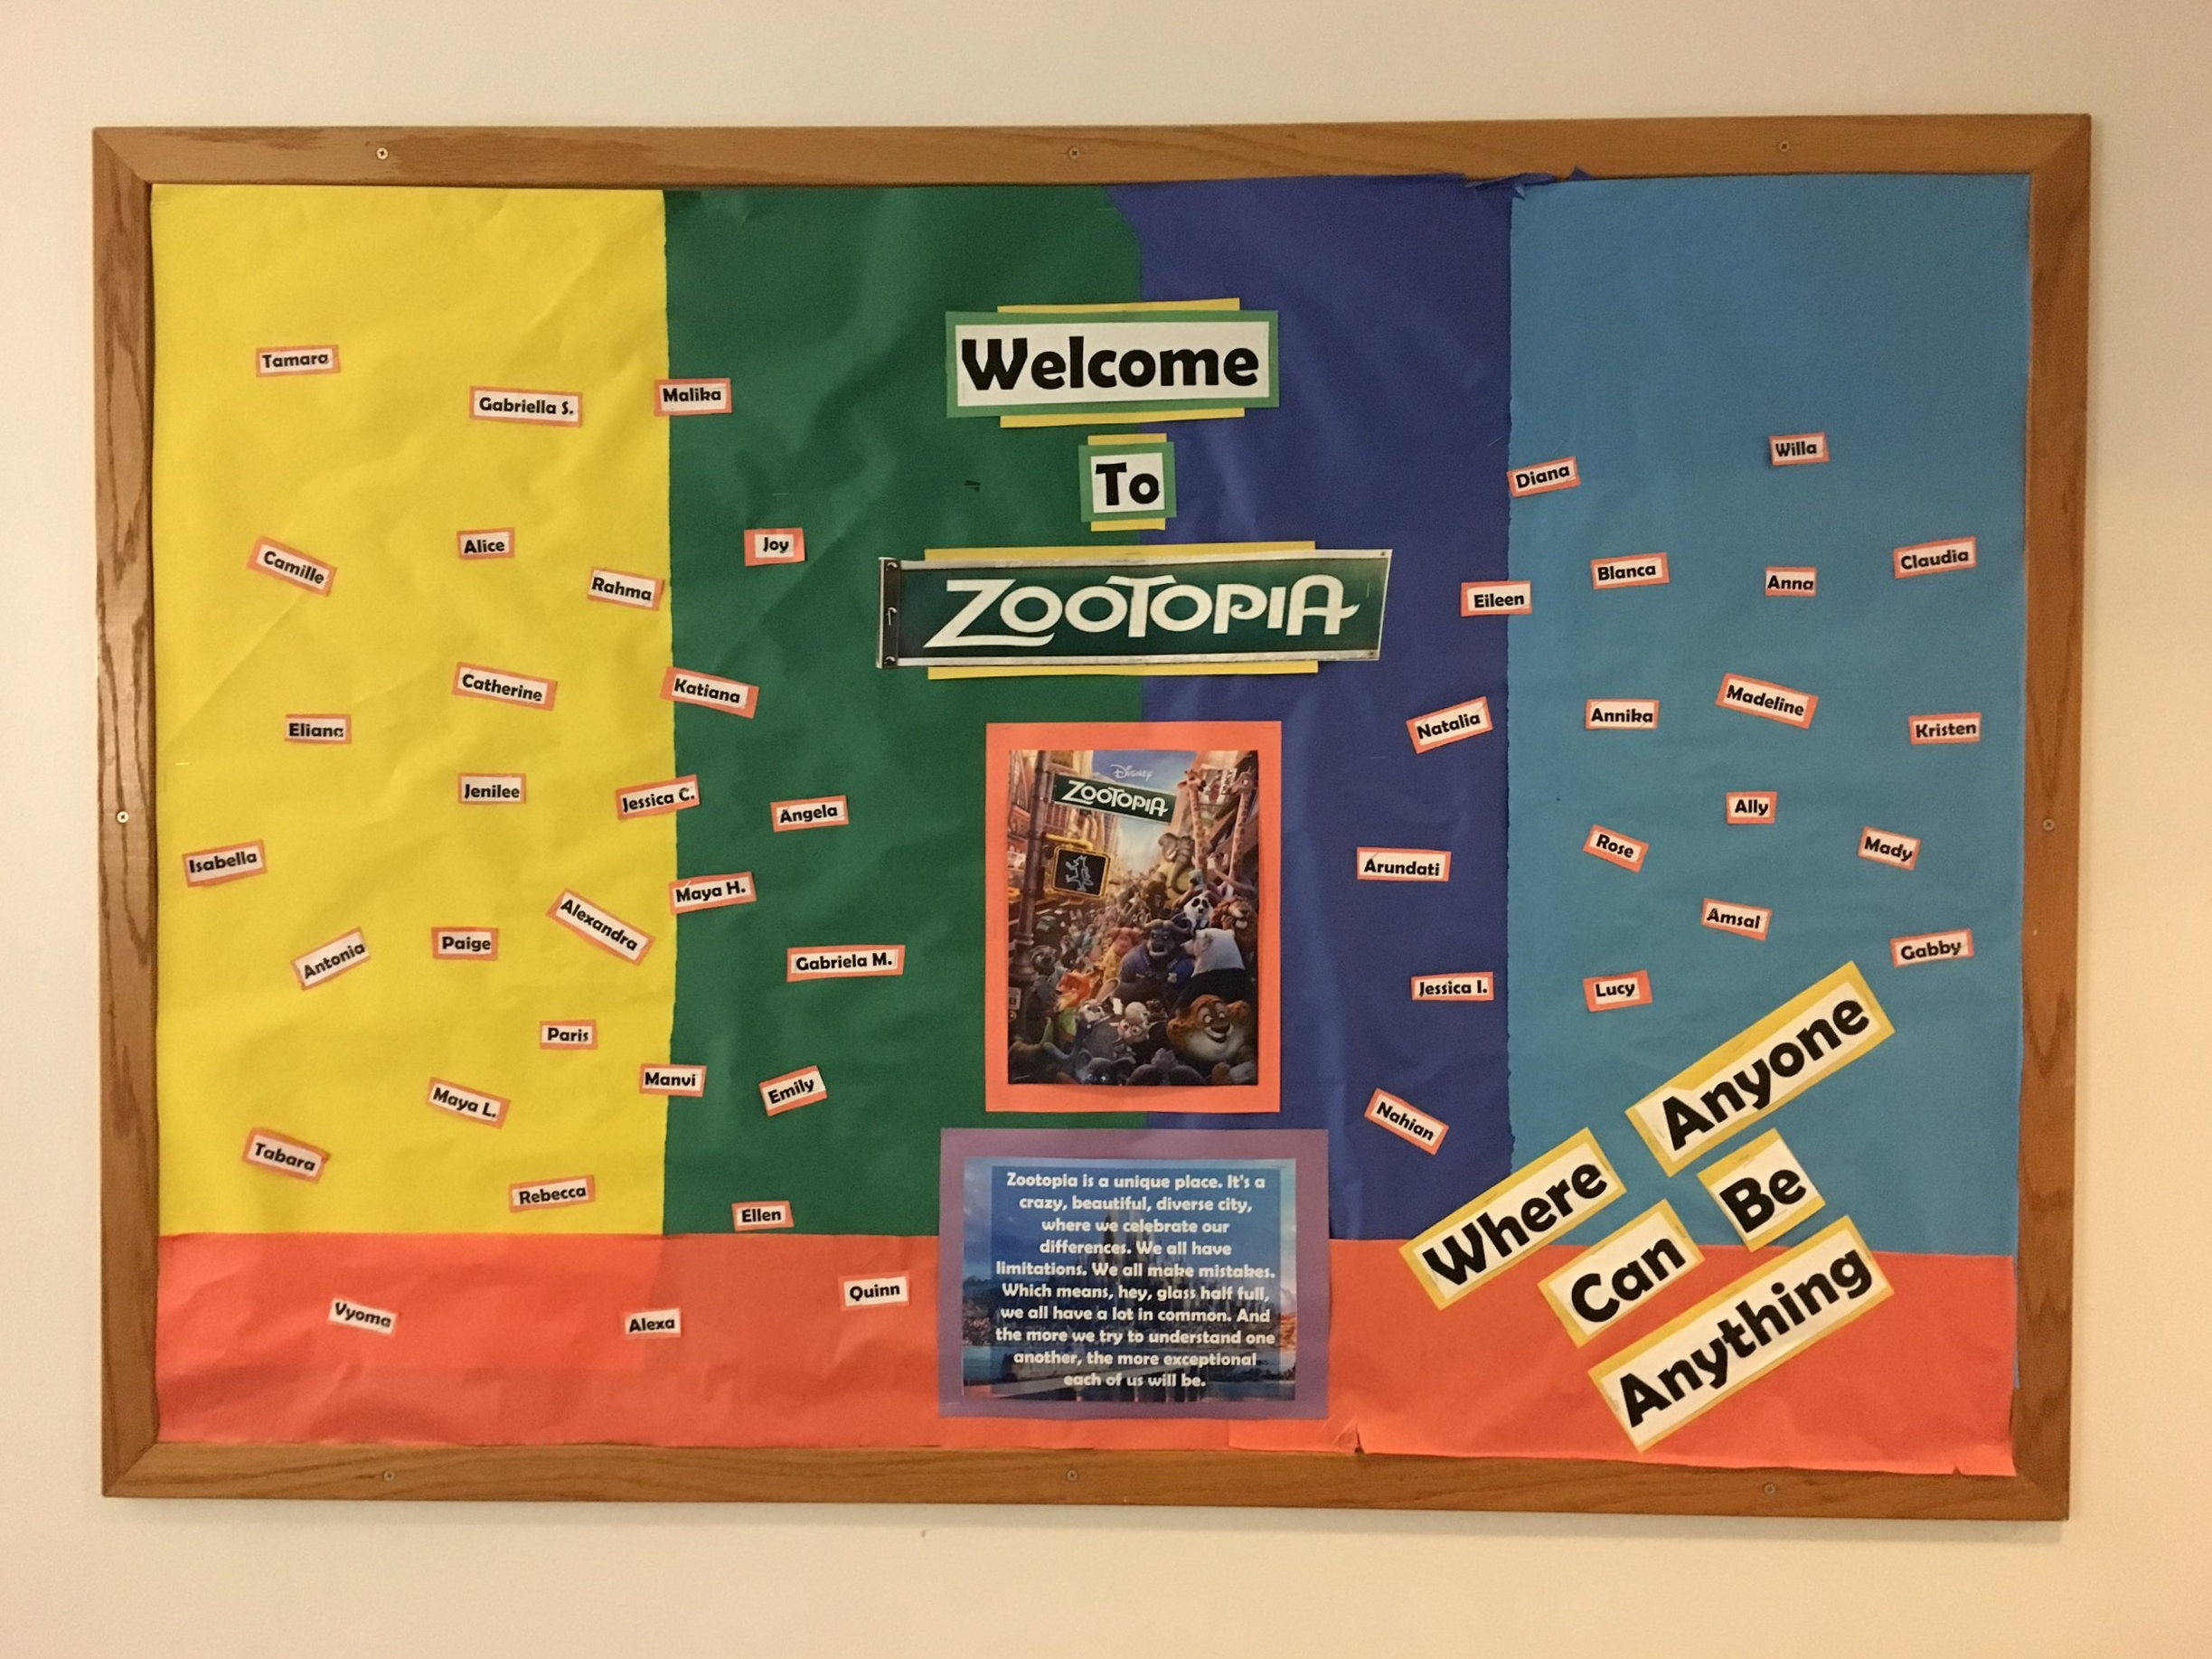 Rebecca made this bulletin board with the names of all of the people on my floor, featuring our floor theme: Zootopia!